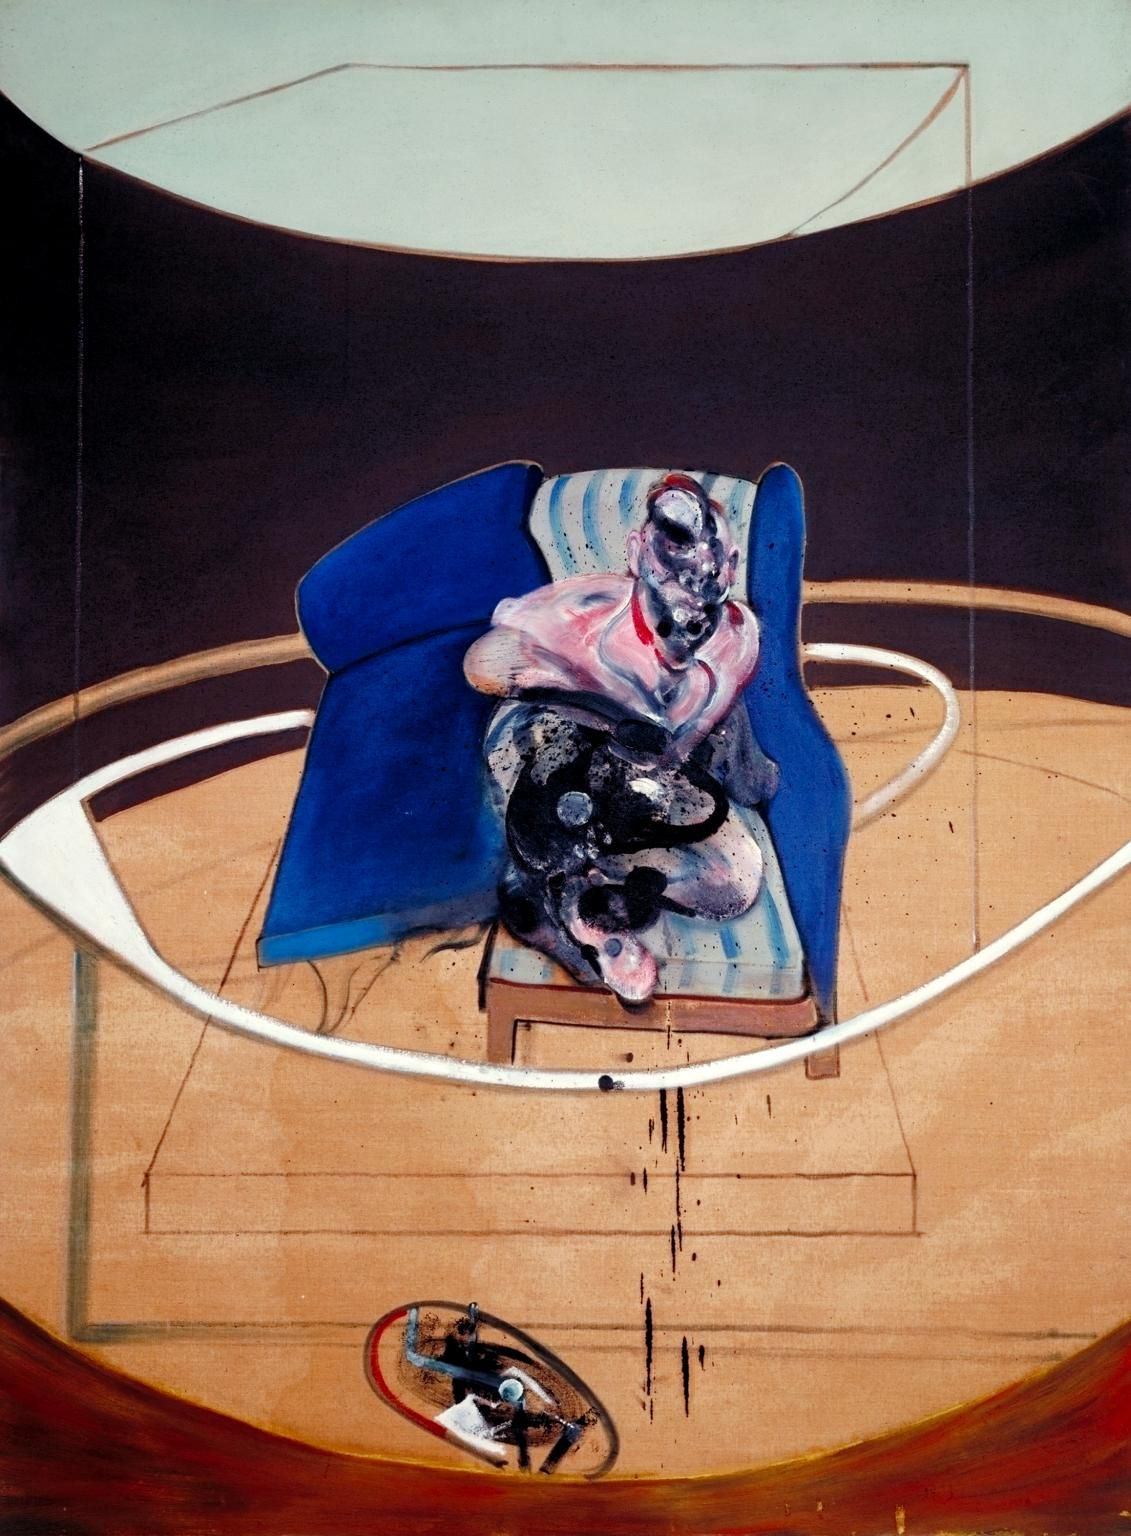 Pin by adriangraves on art francis bacon art gallery of